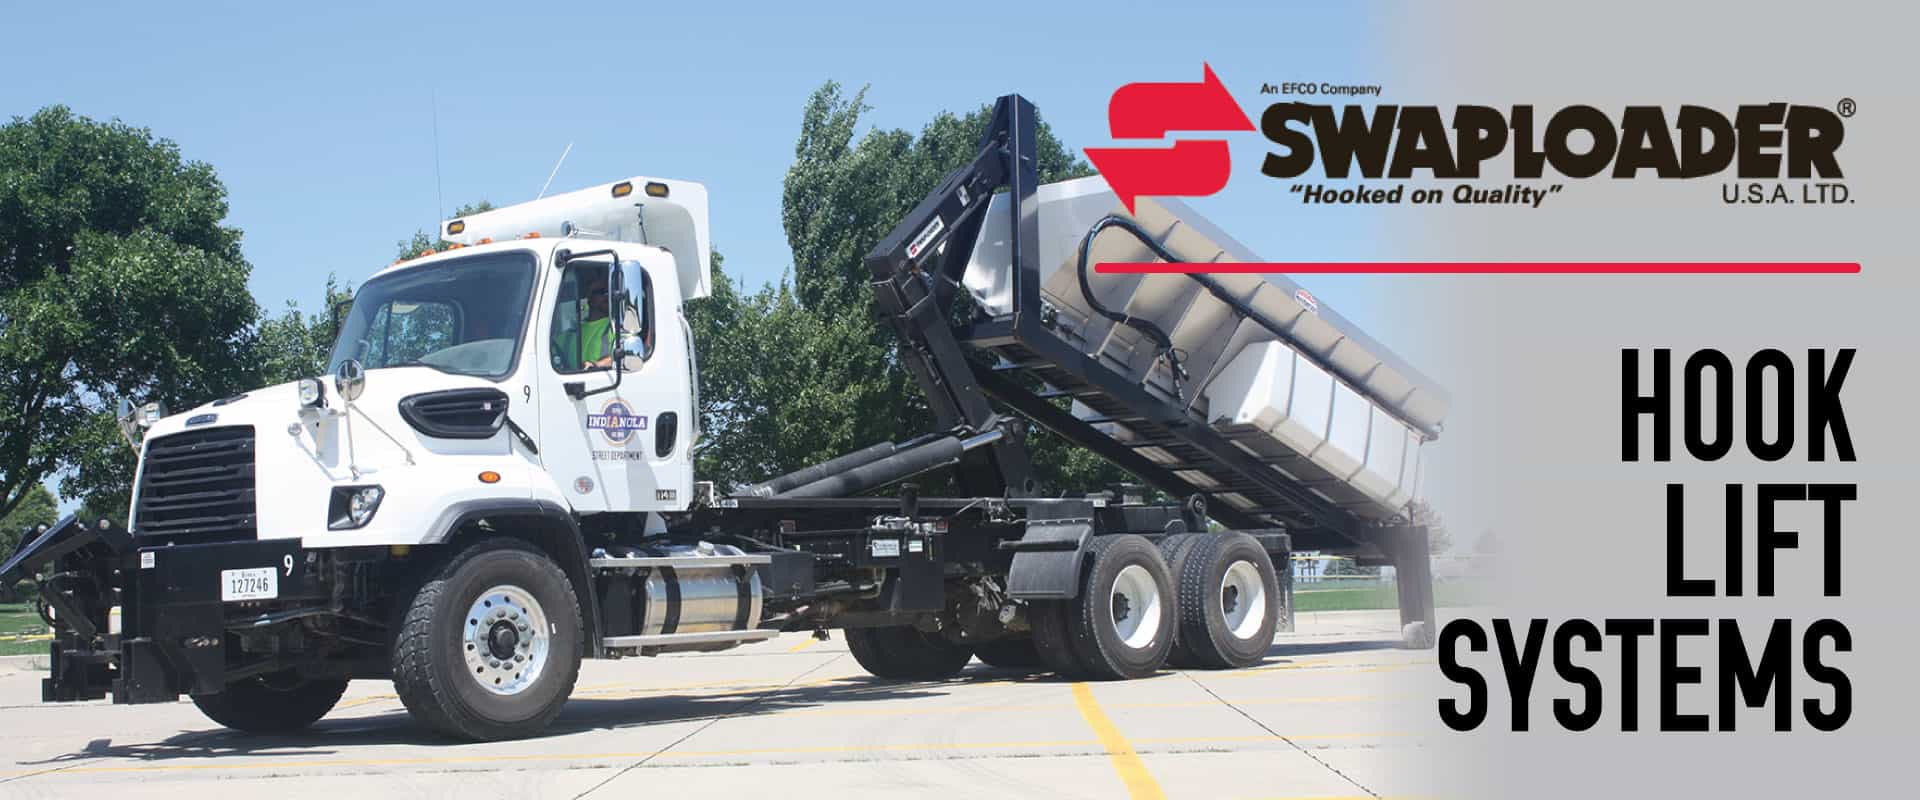 swaploader hook lift systems tracey road equipment